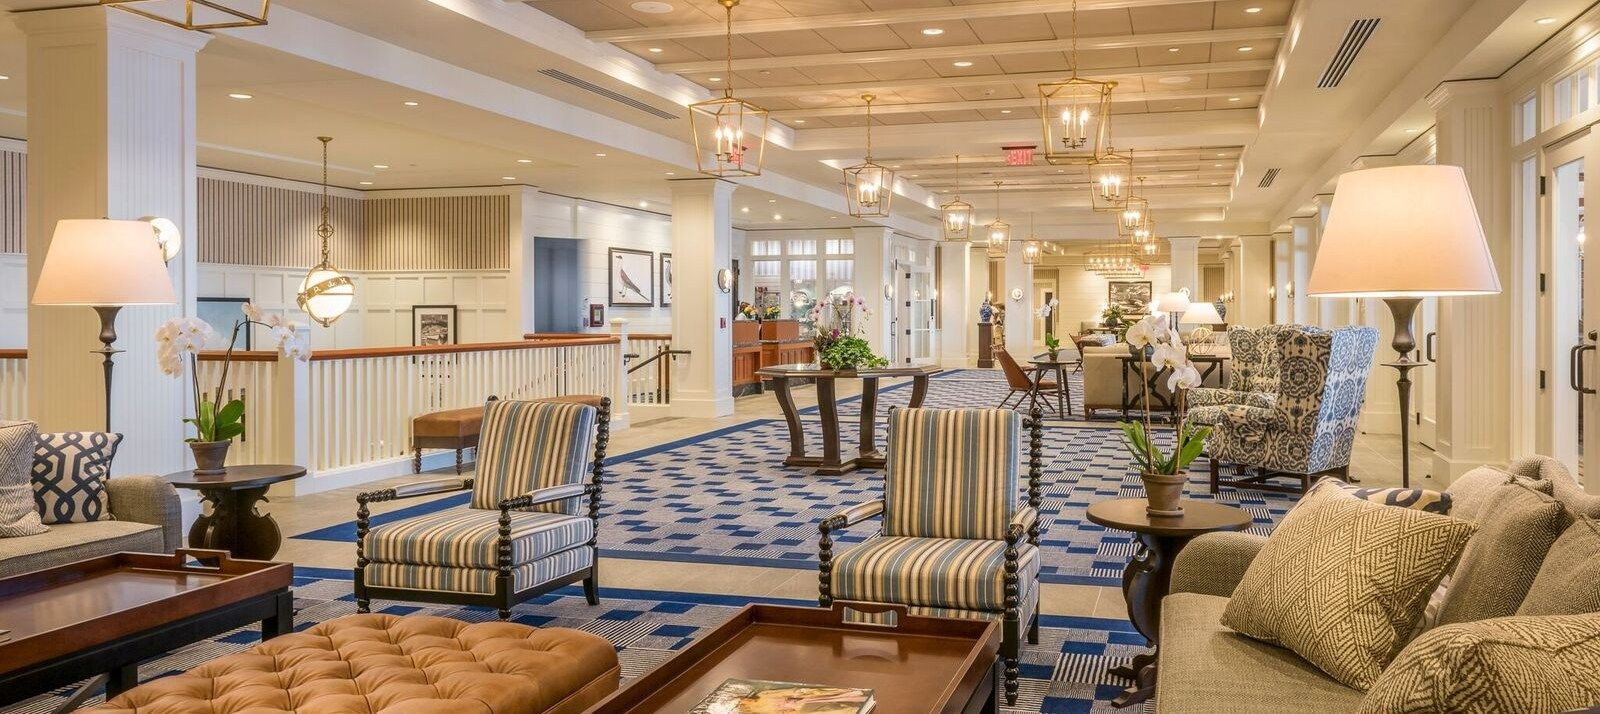 Hotels In Gloucester Ma Beauport Hotel Posh Lobby Bar